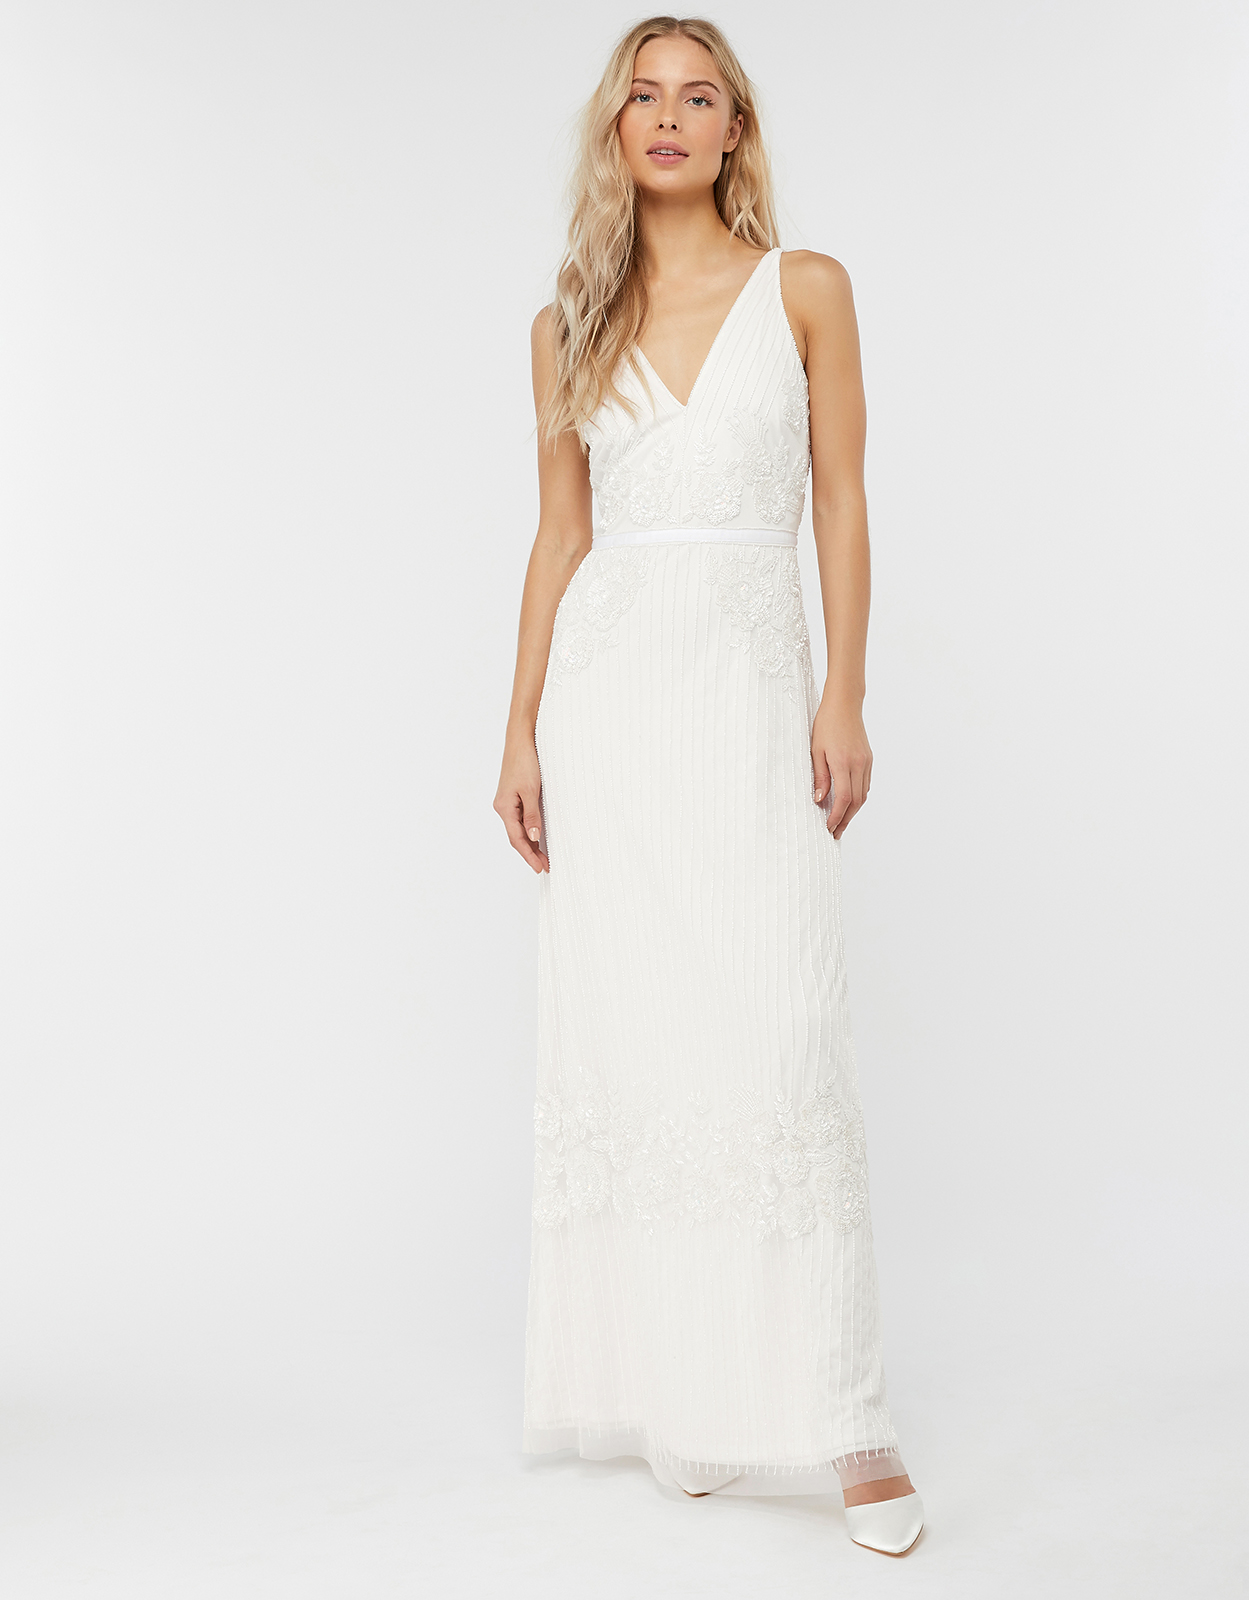 01af7c930191d Monsoon s new bridal collection has dresses for less than €300 and they re  DREAMY